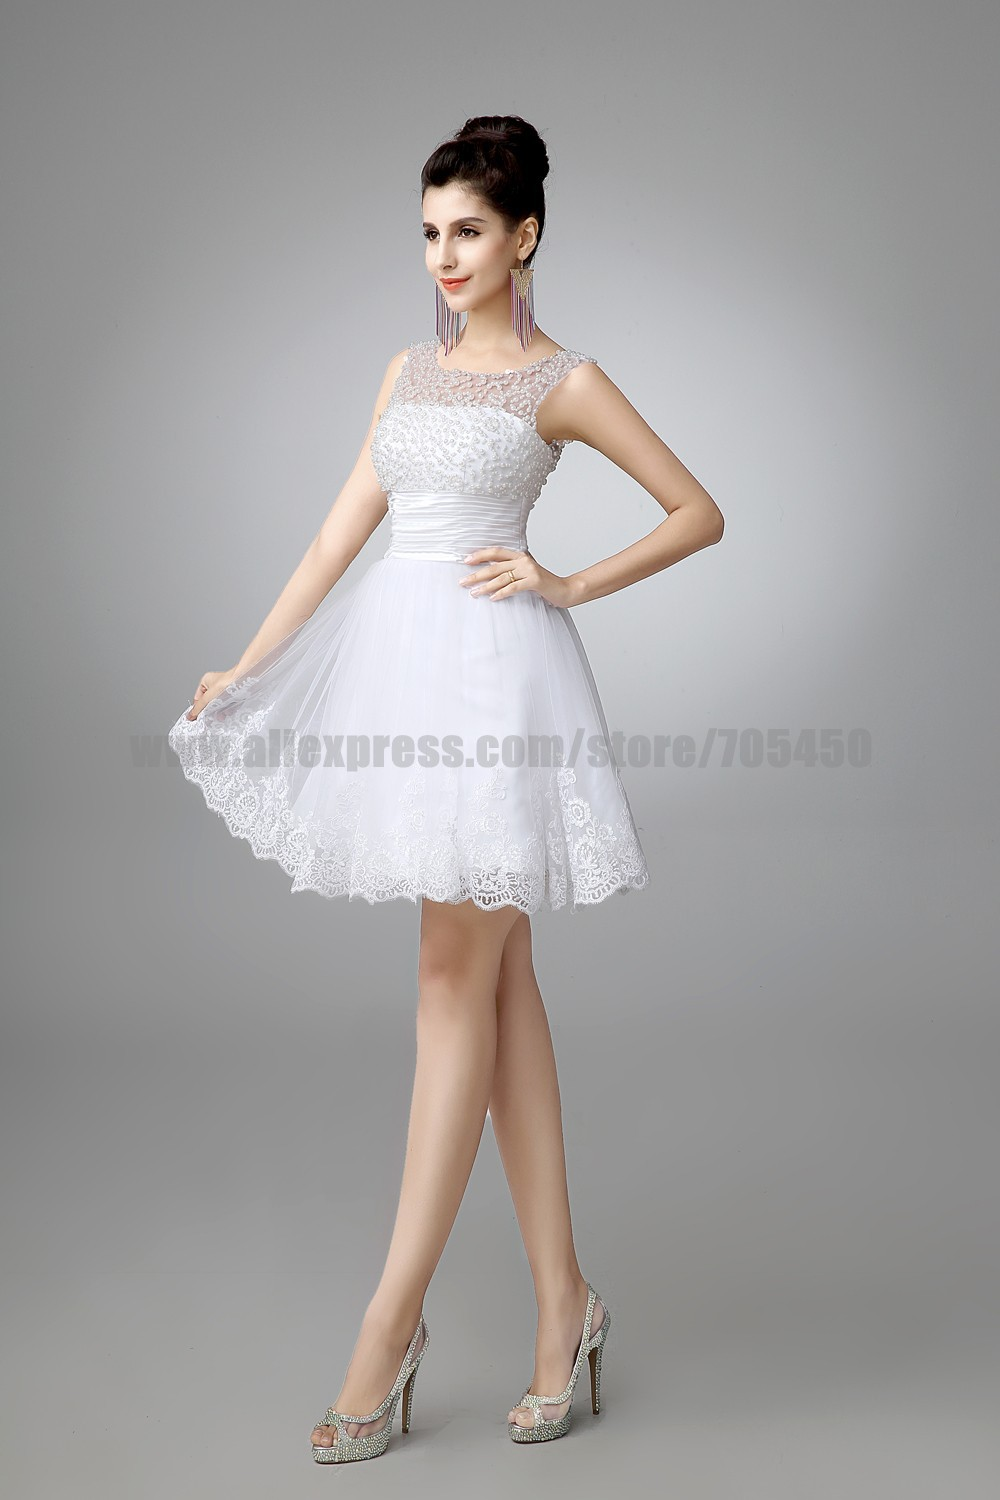 White short wedding dresses all dress for Good wedding dresses for short brides